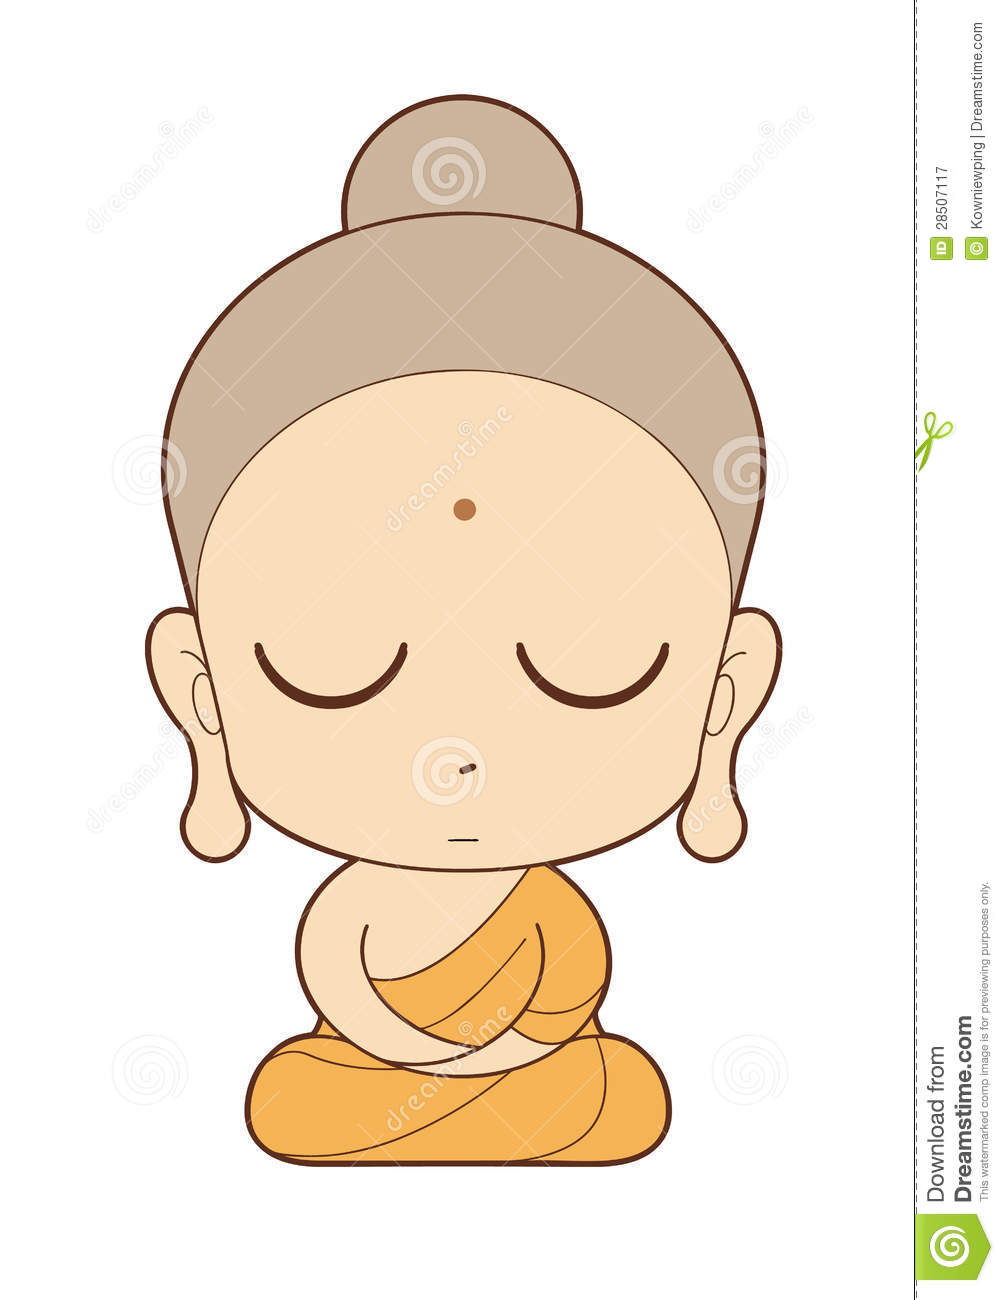 monk cartoons illustrations amp vector stock images 2695